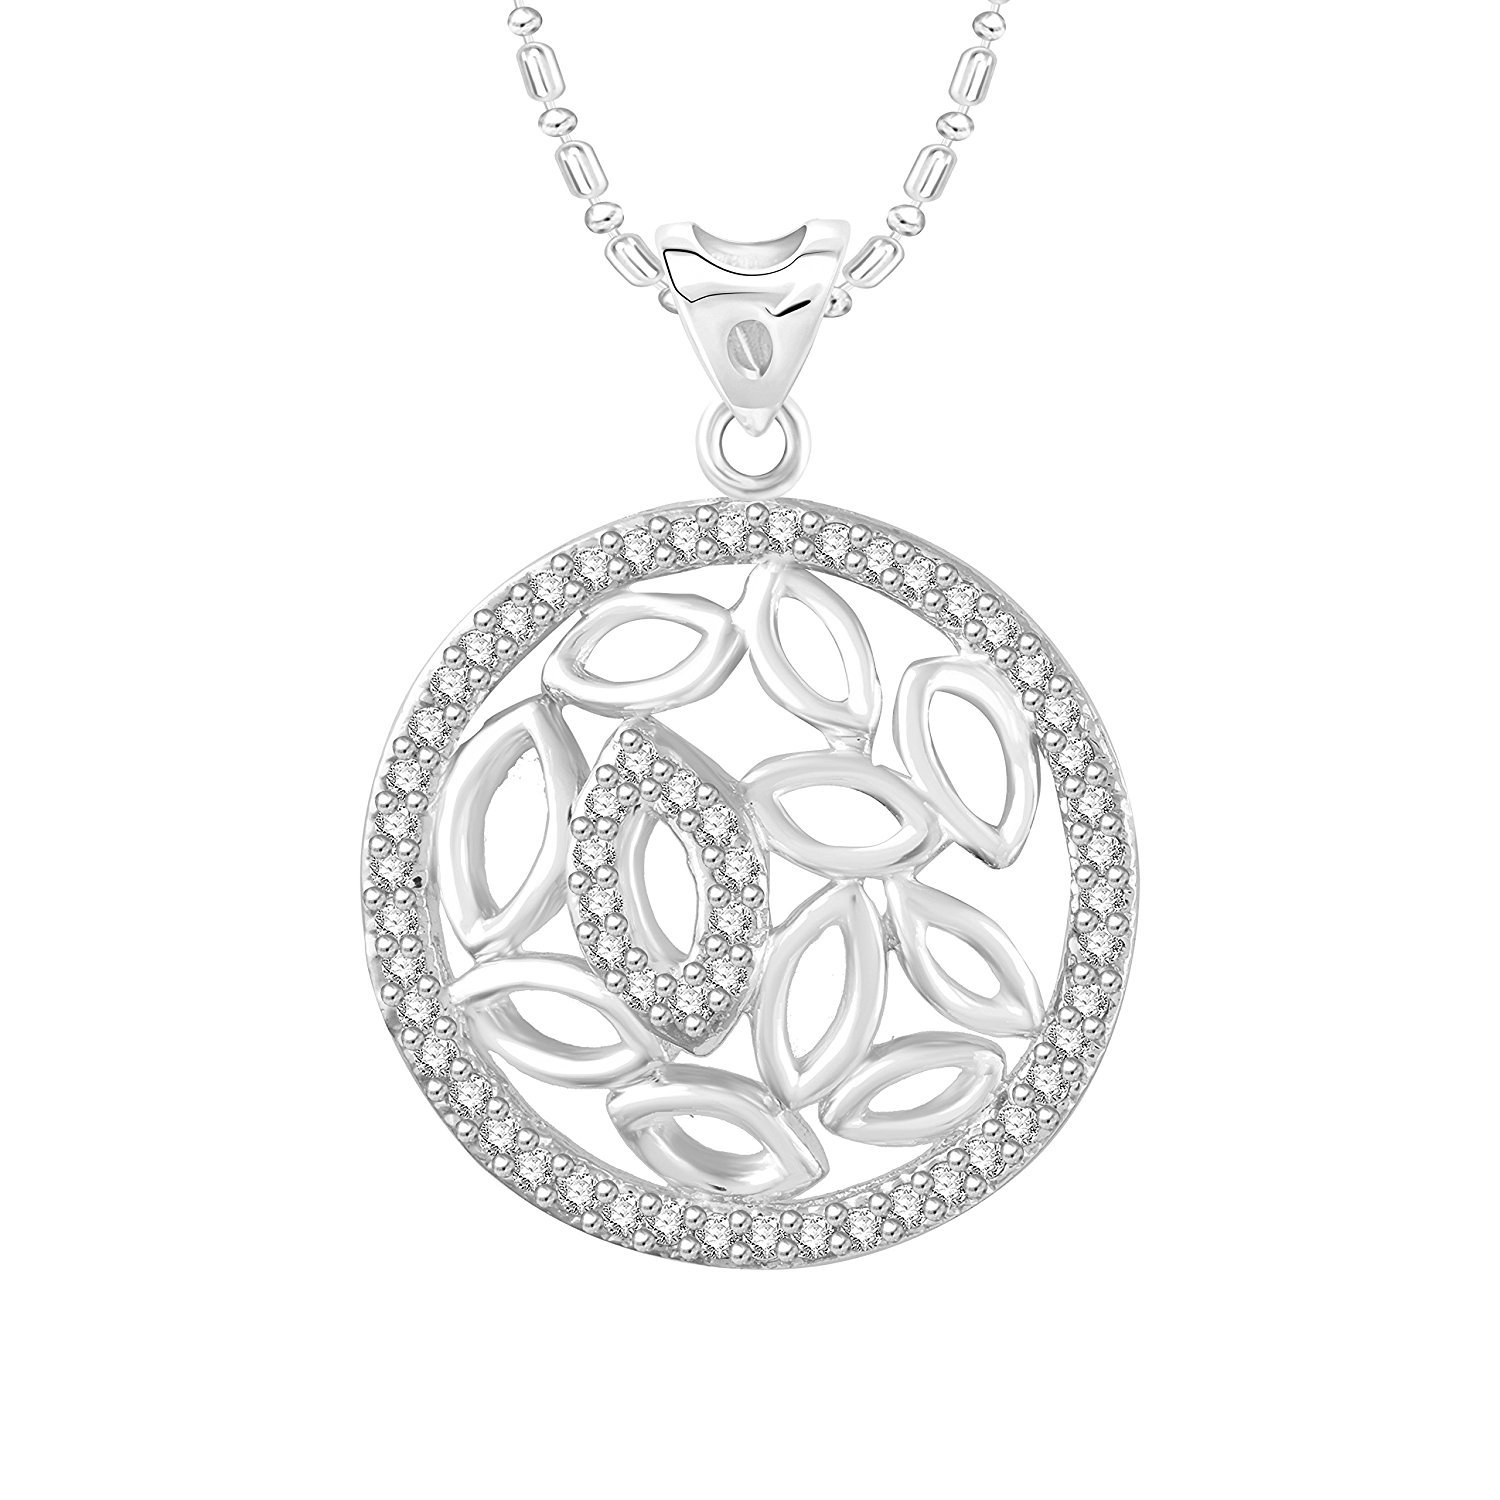 Ashley Jewels Simulated Diamond Studded Fashion Pendant Necklace in 14K White Gold Plated With Box Chain